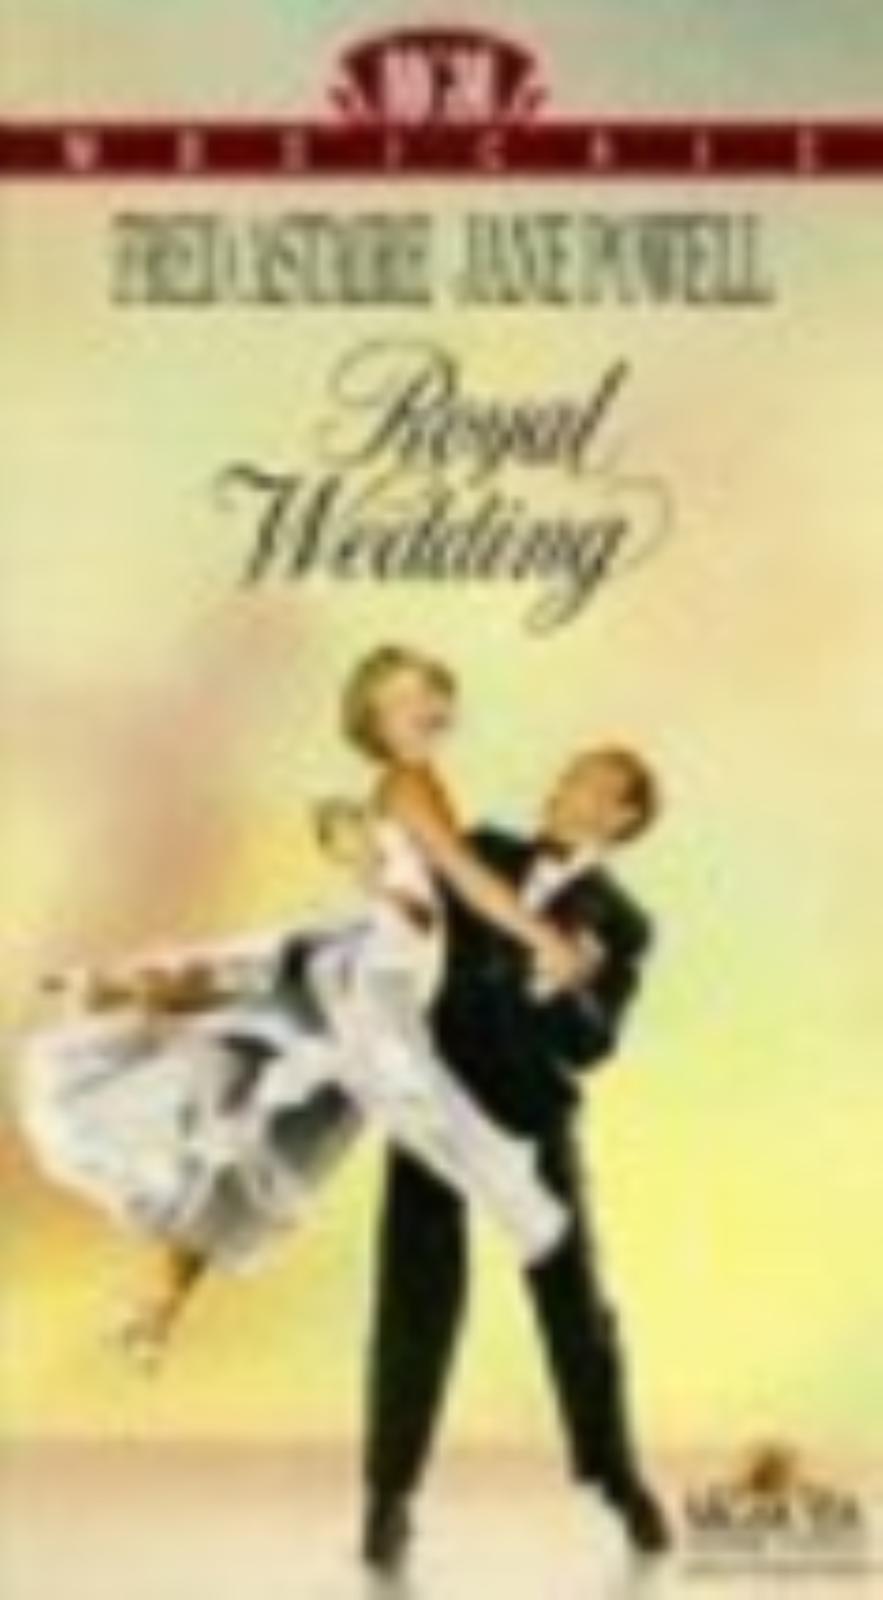 Royal Wedding Vhs